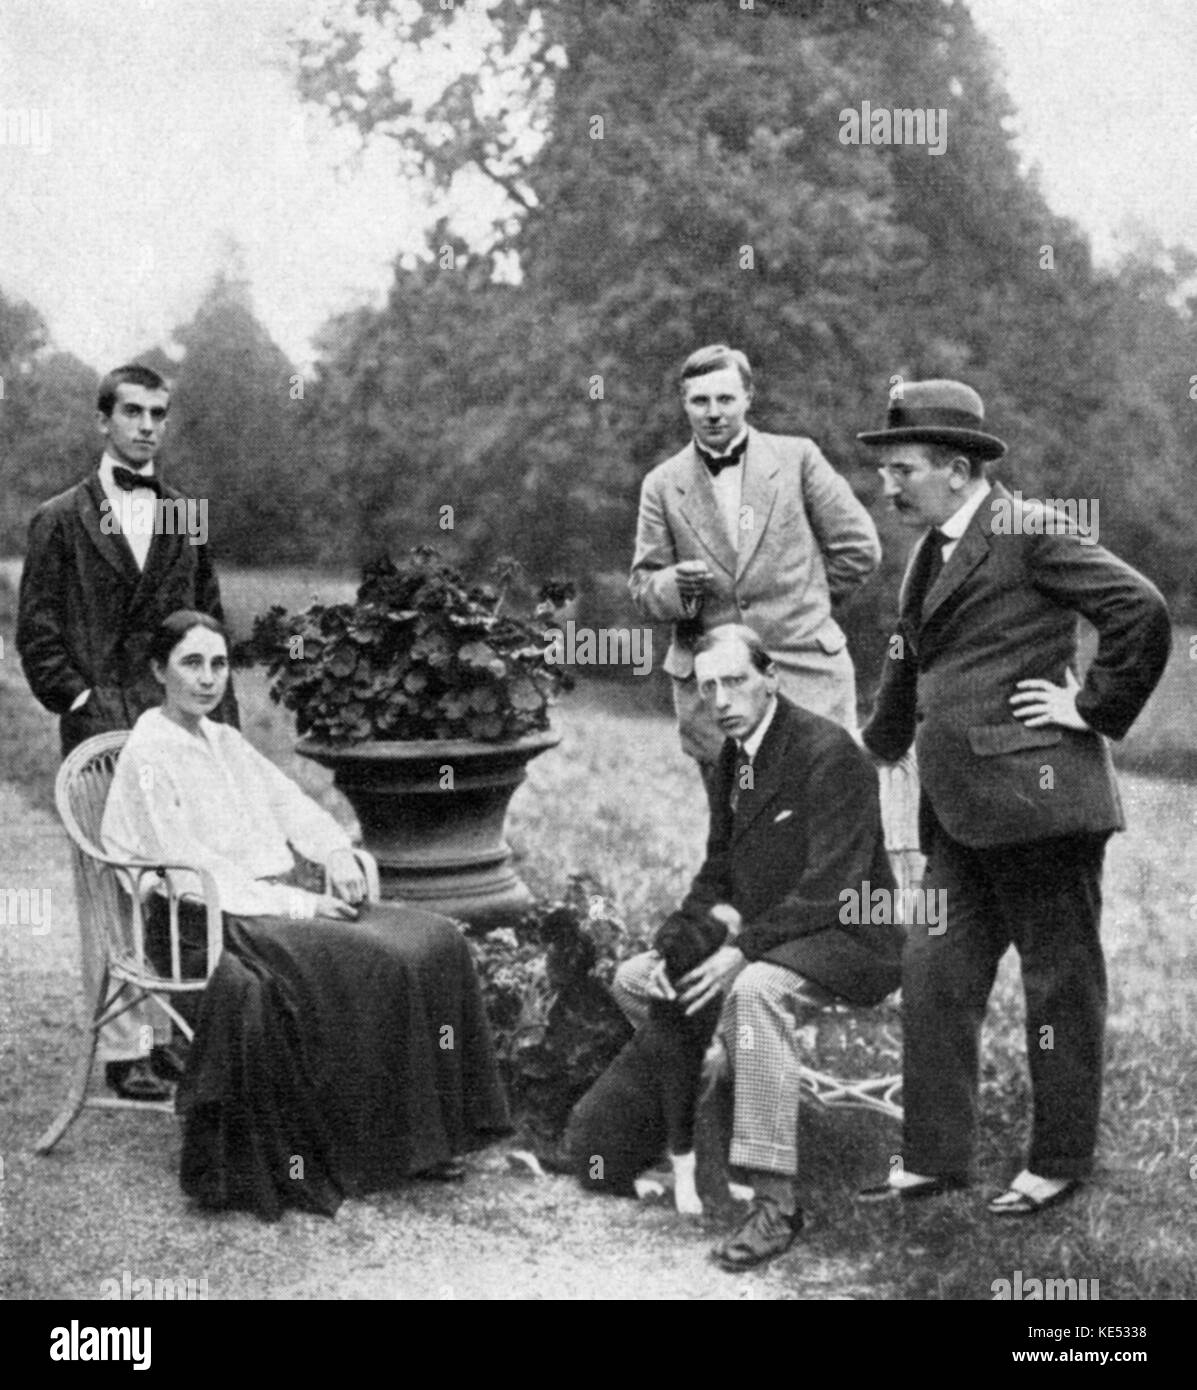 Sergei Diaghilev 's colleagues and friends - (from left to right) Léonide Massine Massine, Natalia Goncharova, - Stock Image